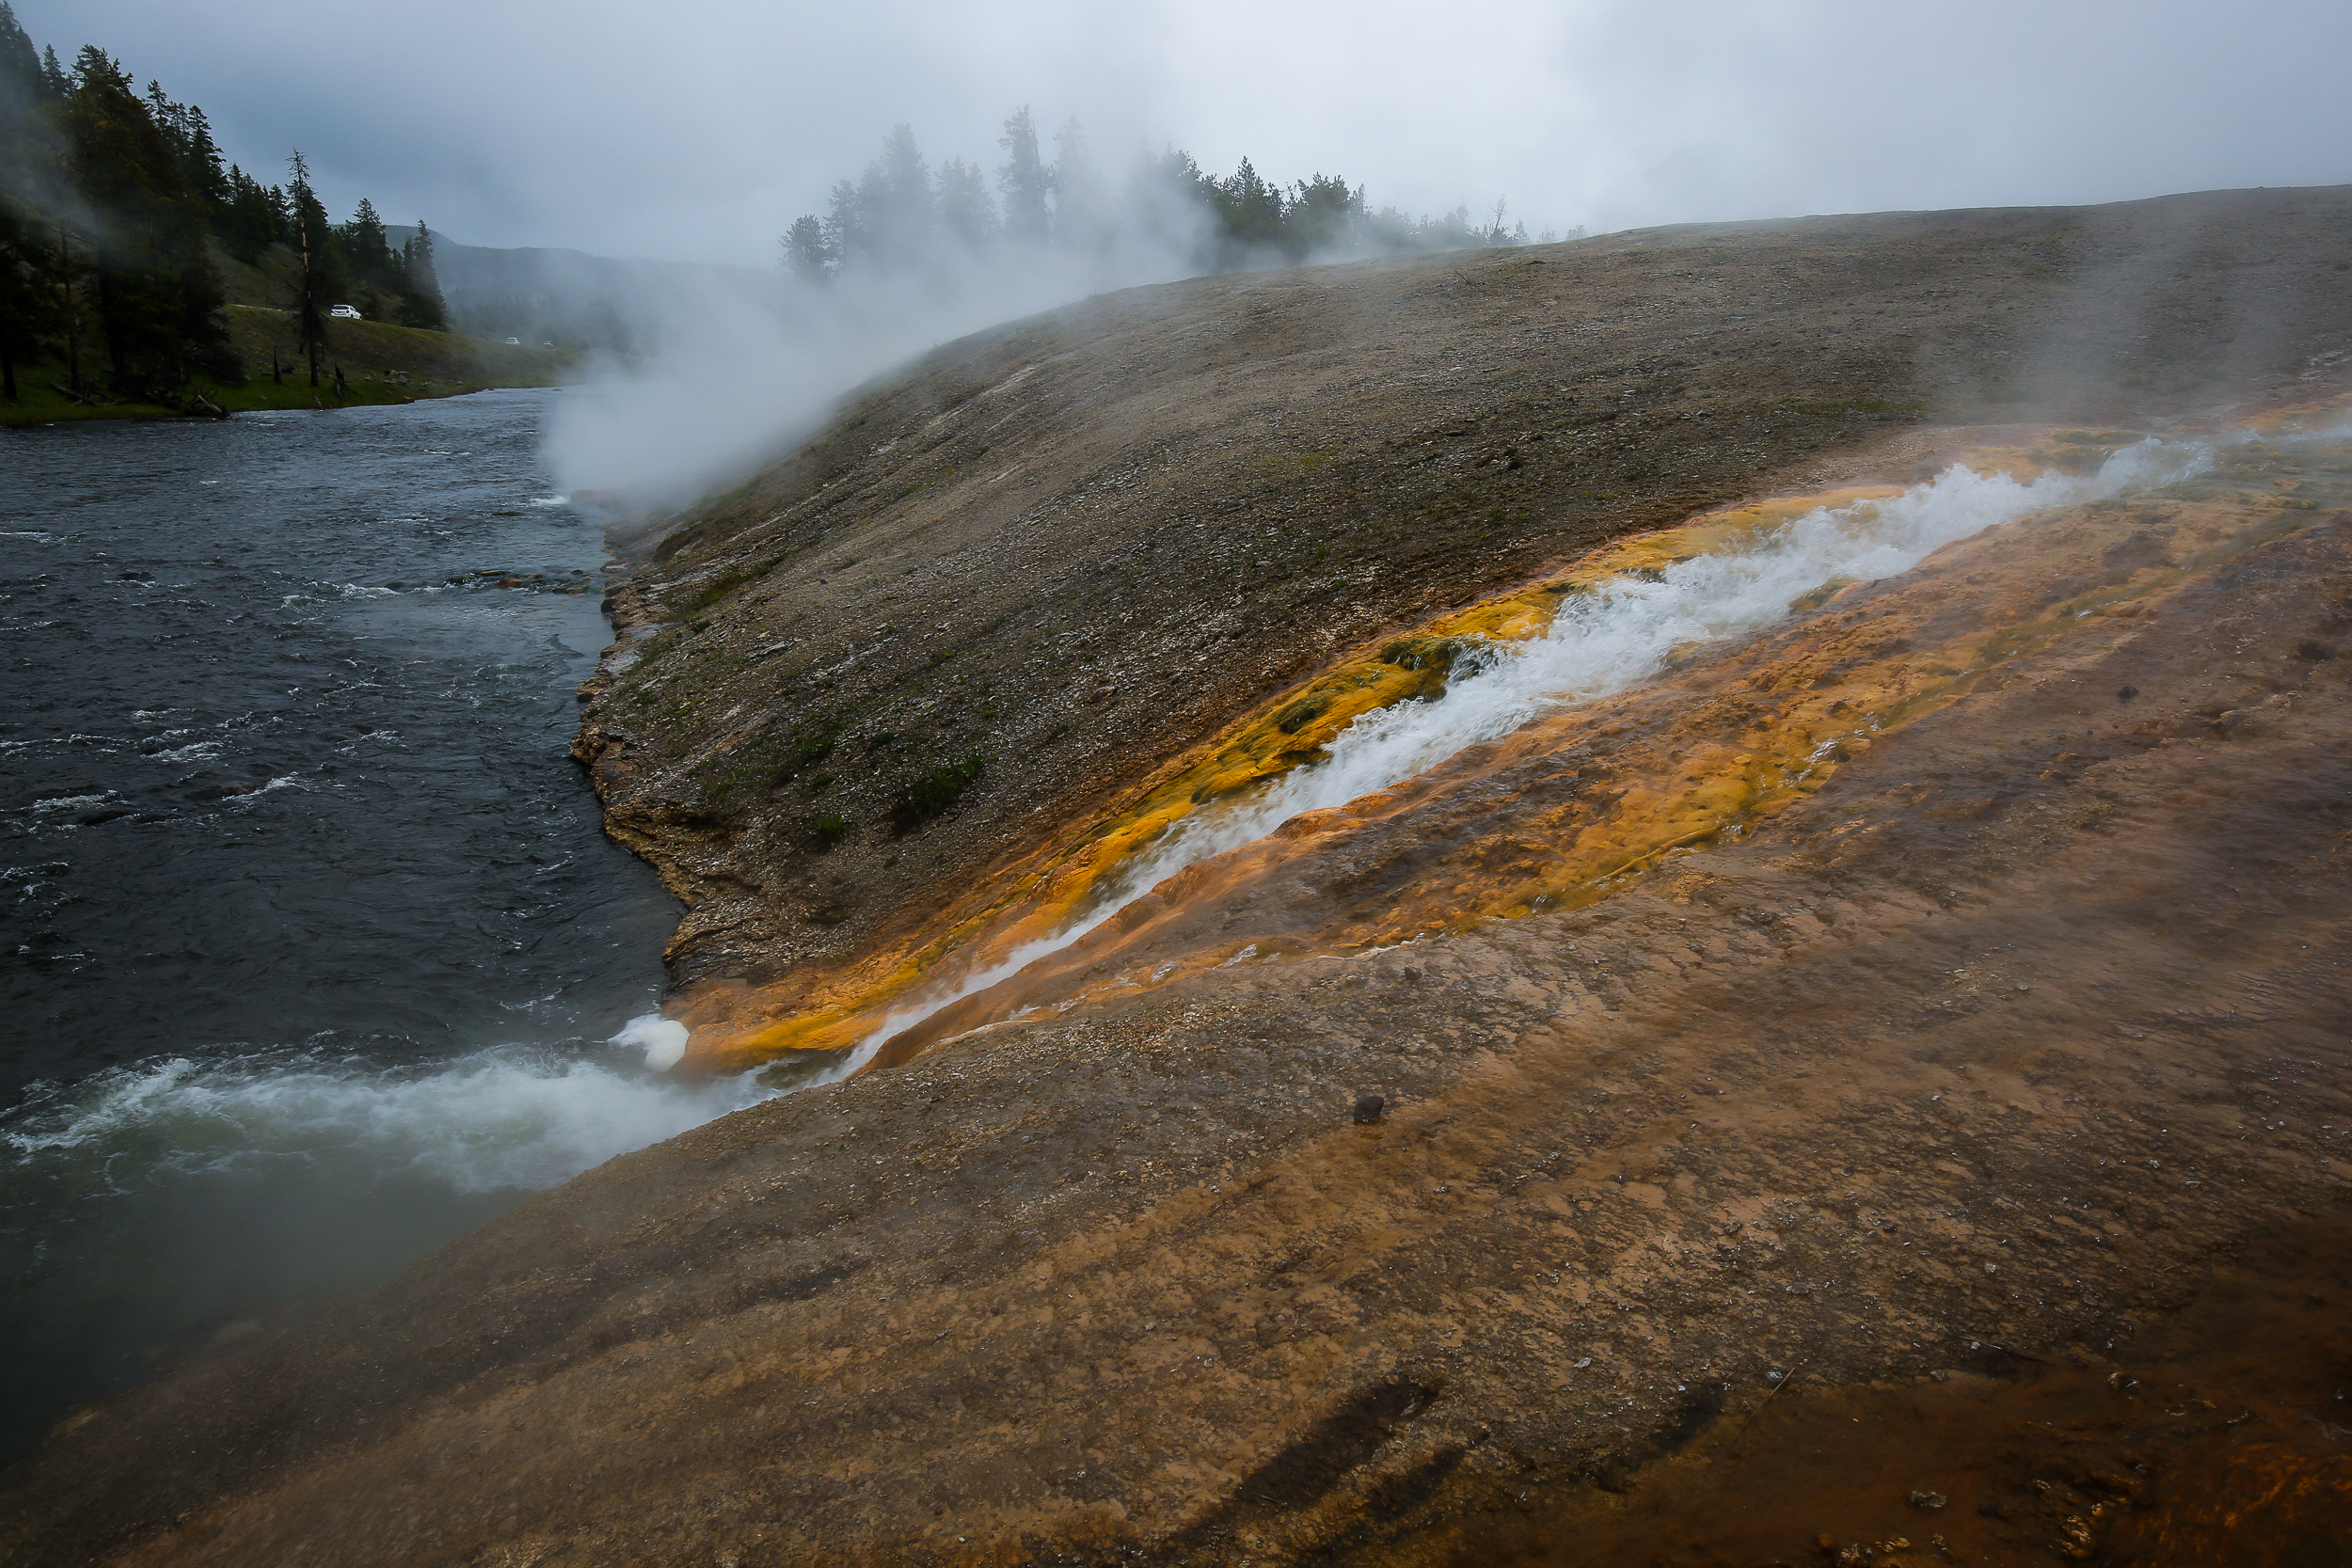 Run-off from Excelsior Geyser into Firehole River